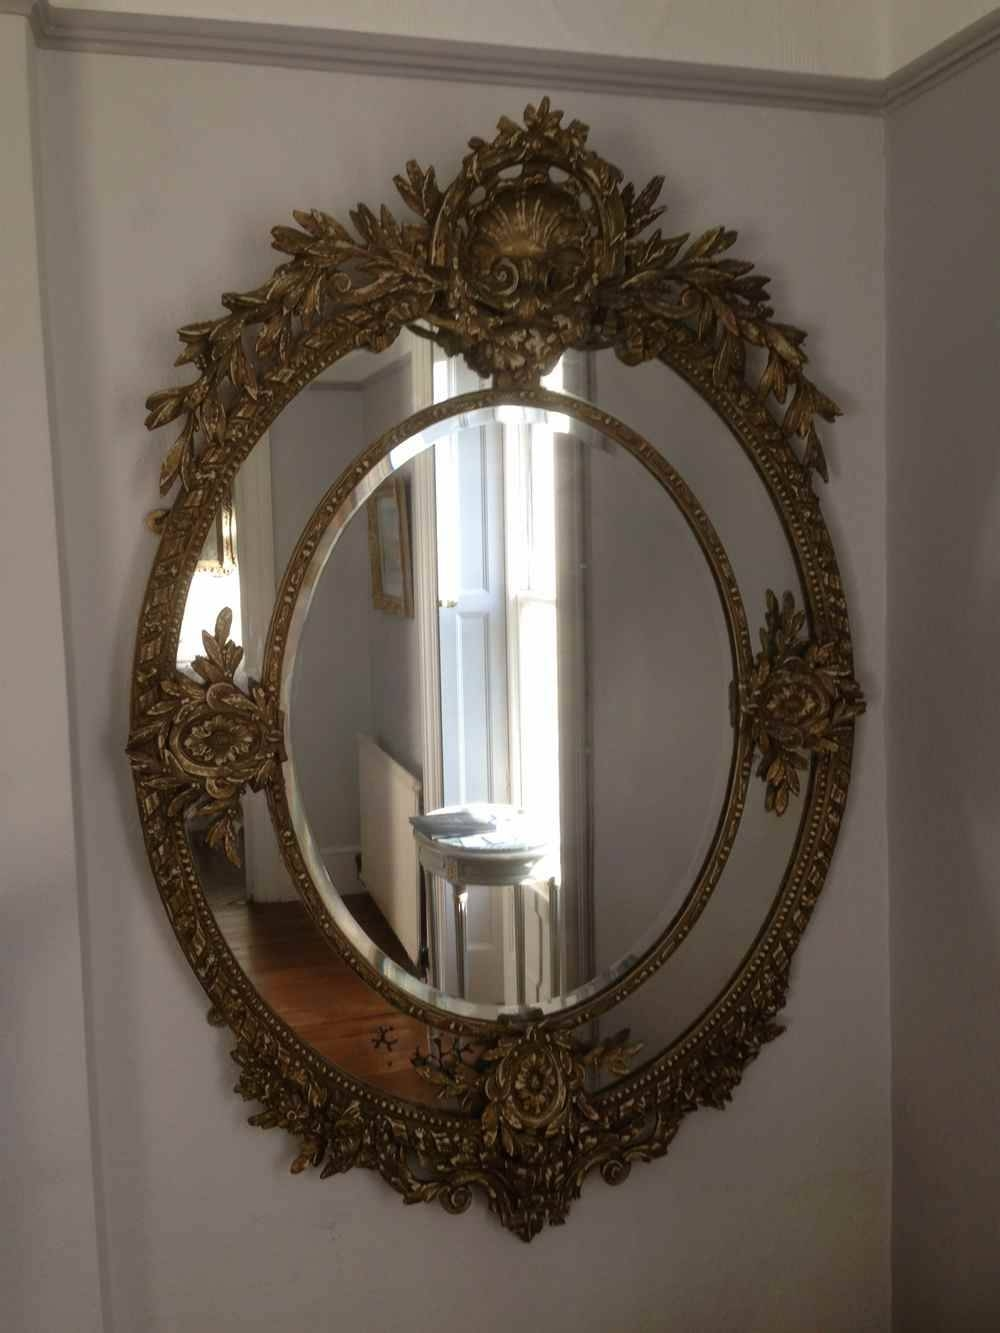 A Wonderful Large Antique 19Th Century French Carved Wood Oval Regarding Large French Mirrors (View 4 of 15)